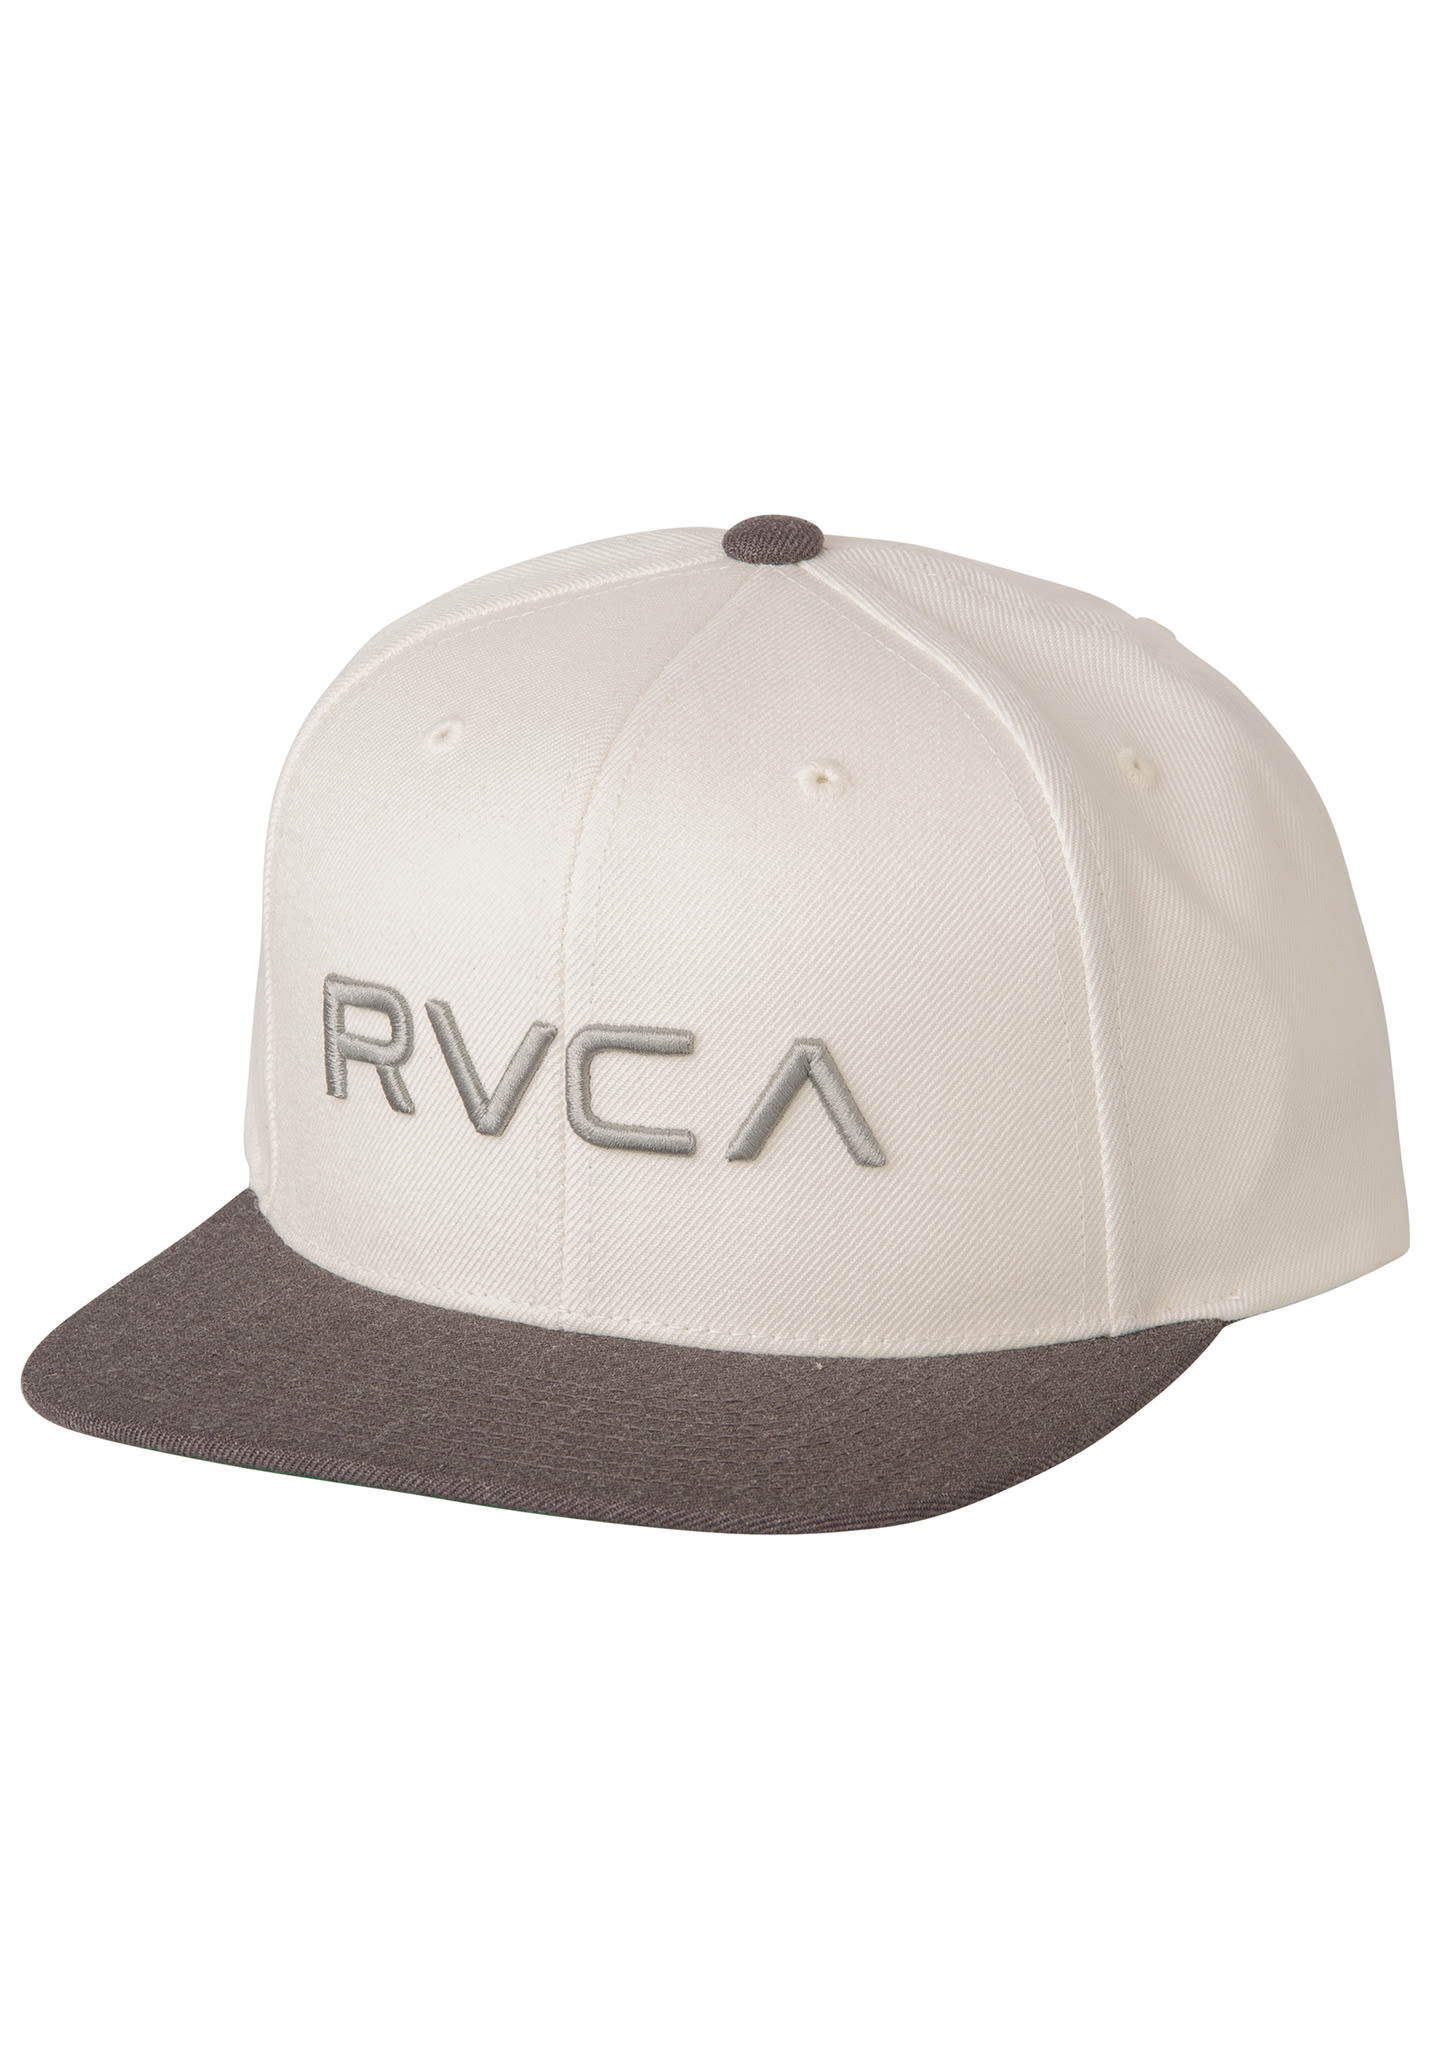 finest selection 65886 5cf58 RVCA Twill III - Snapback Cap for Men - White - Planet Sports